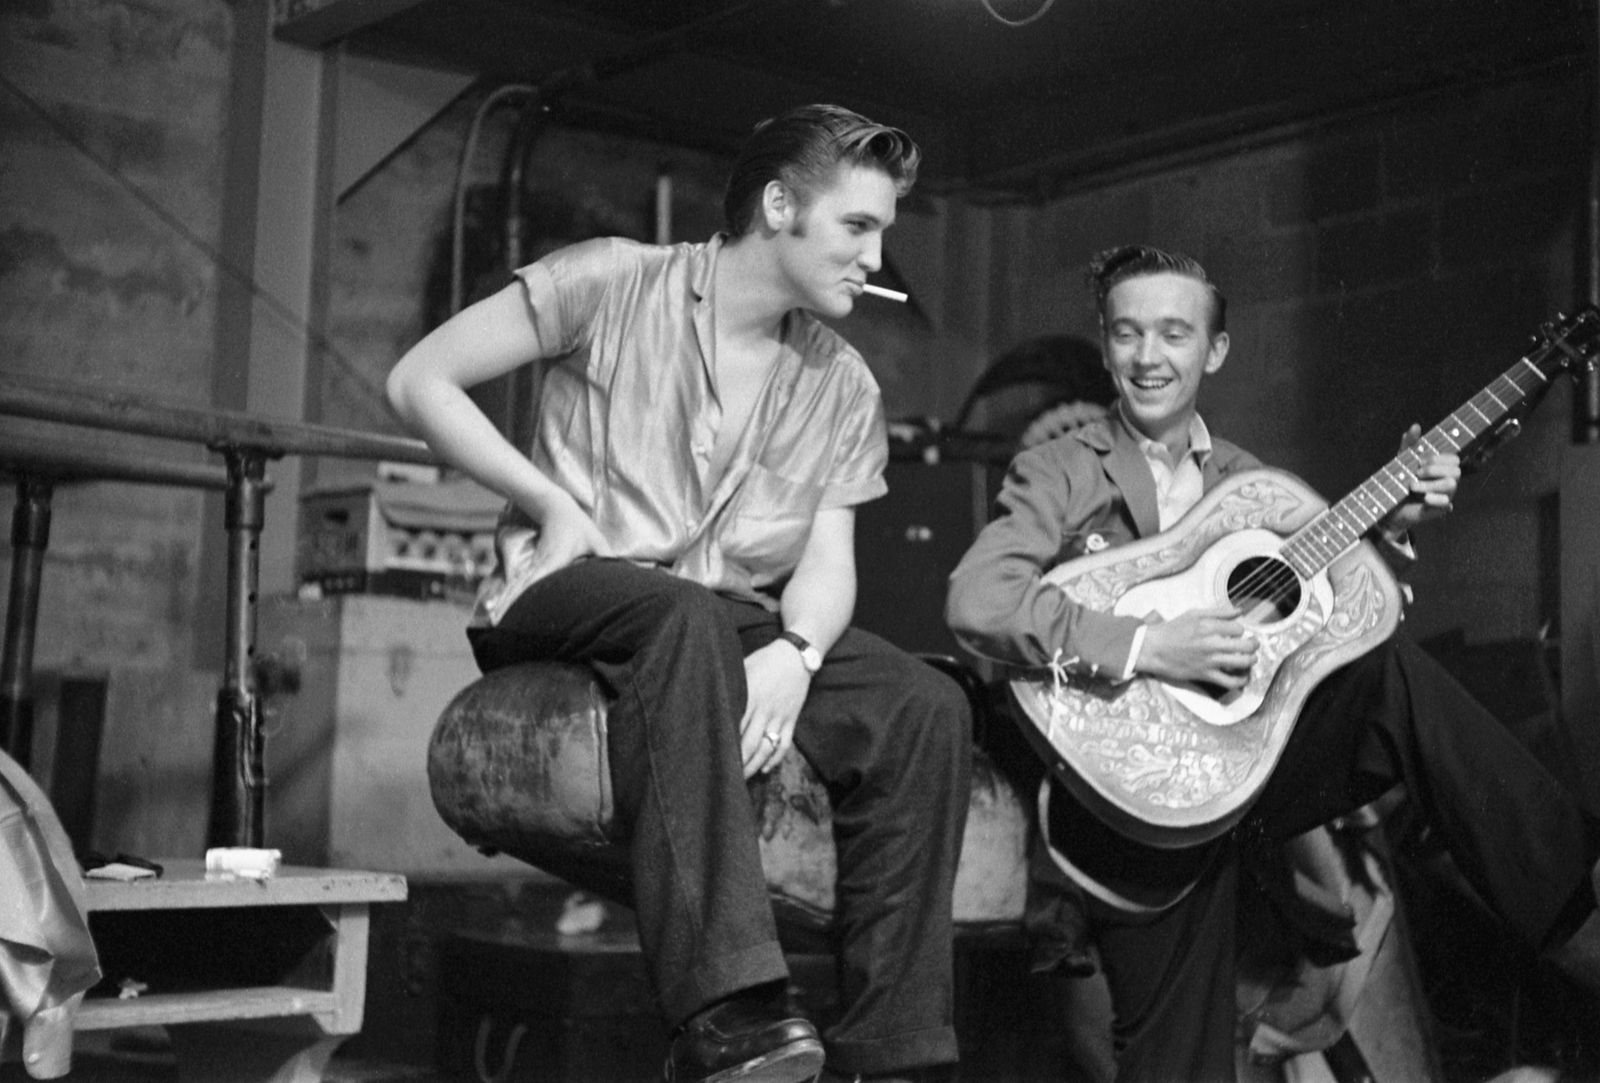 Elvis Presley and his cousin Gene Smith, backstage at the University of Dayton Fieldhouse, May 27, 1956. Gene Smith was part of Presley?s entourage, and is considered a member of the ?Memphis Mafia?.